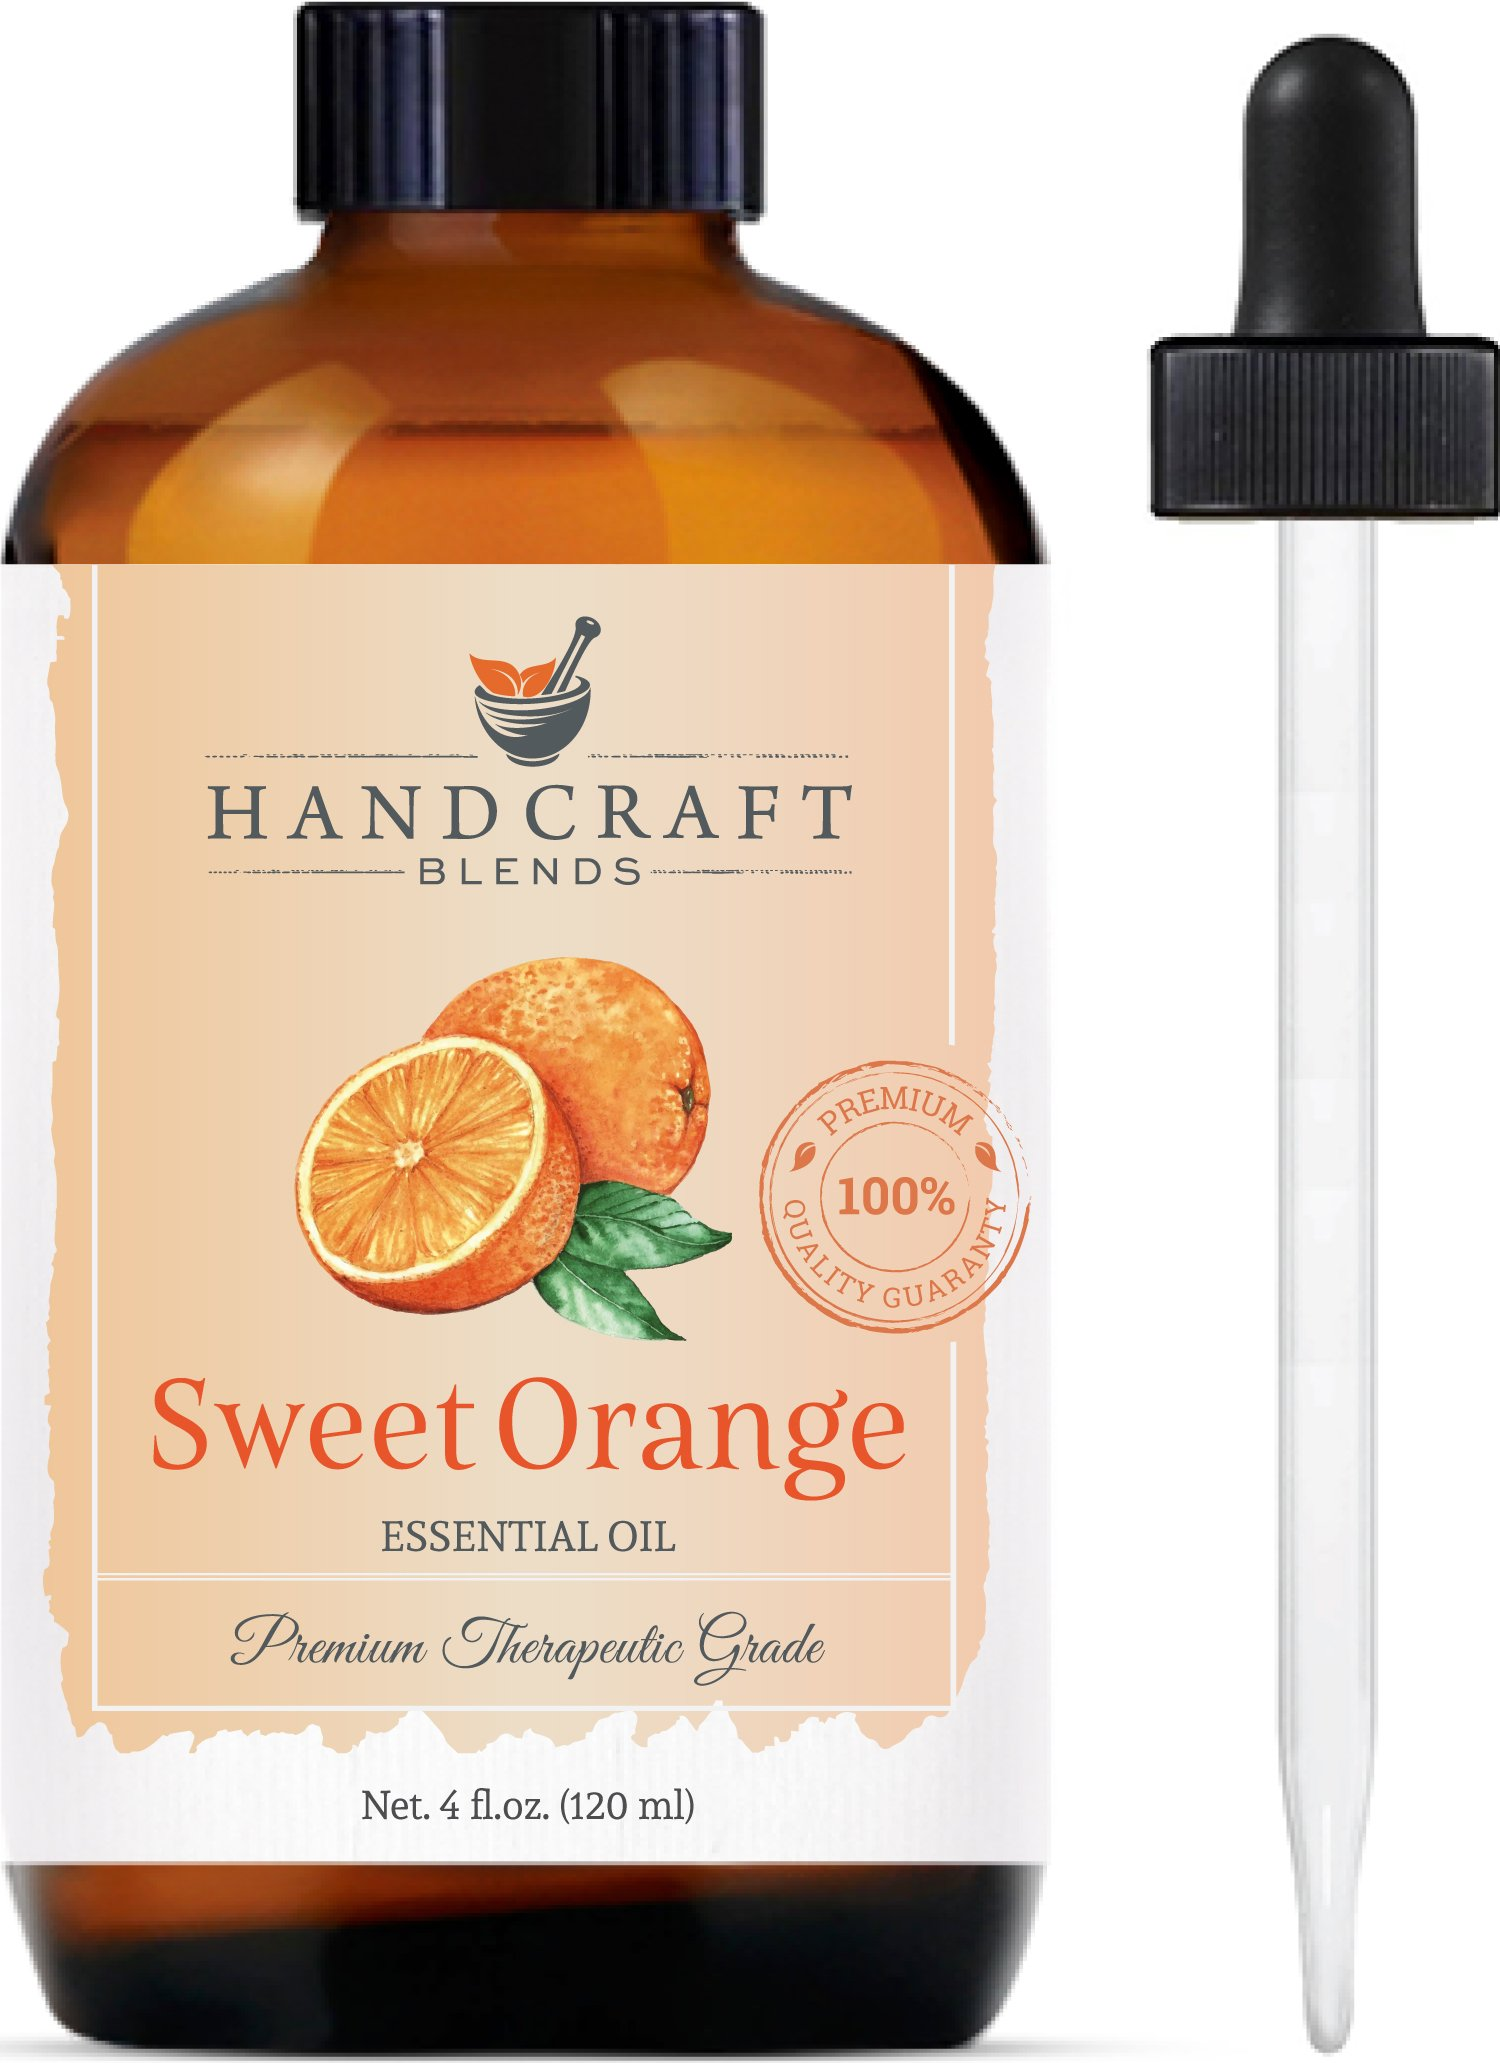 Handcraft Sweet Orange Essential Oil - 100 Percent Pure and Natural - Premium Therapeutic Grade with Premium Glass Dropper - Huge 4 oz by Handcraft Blends